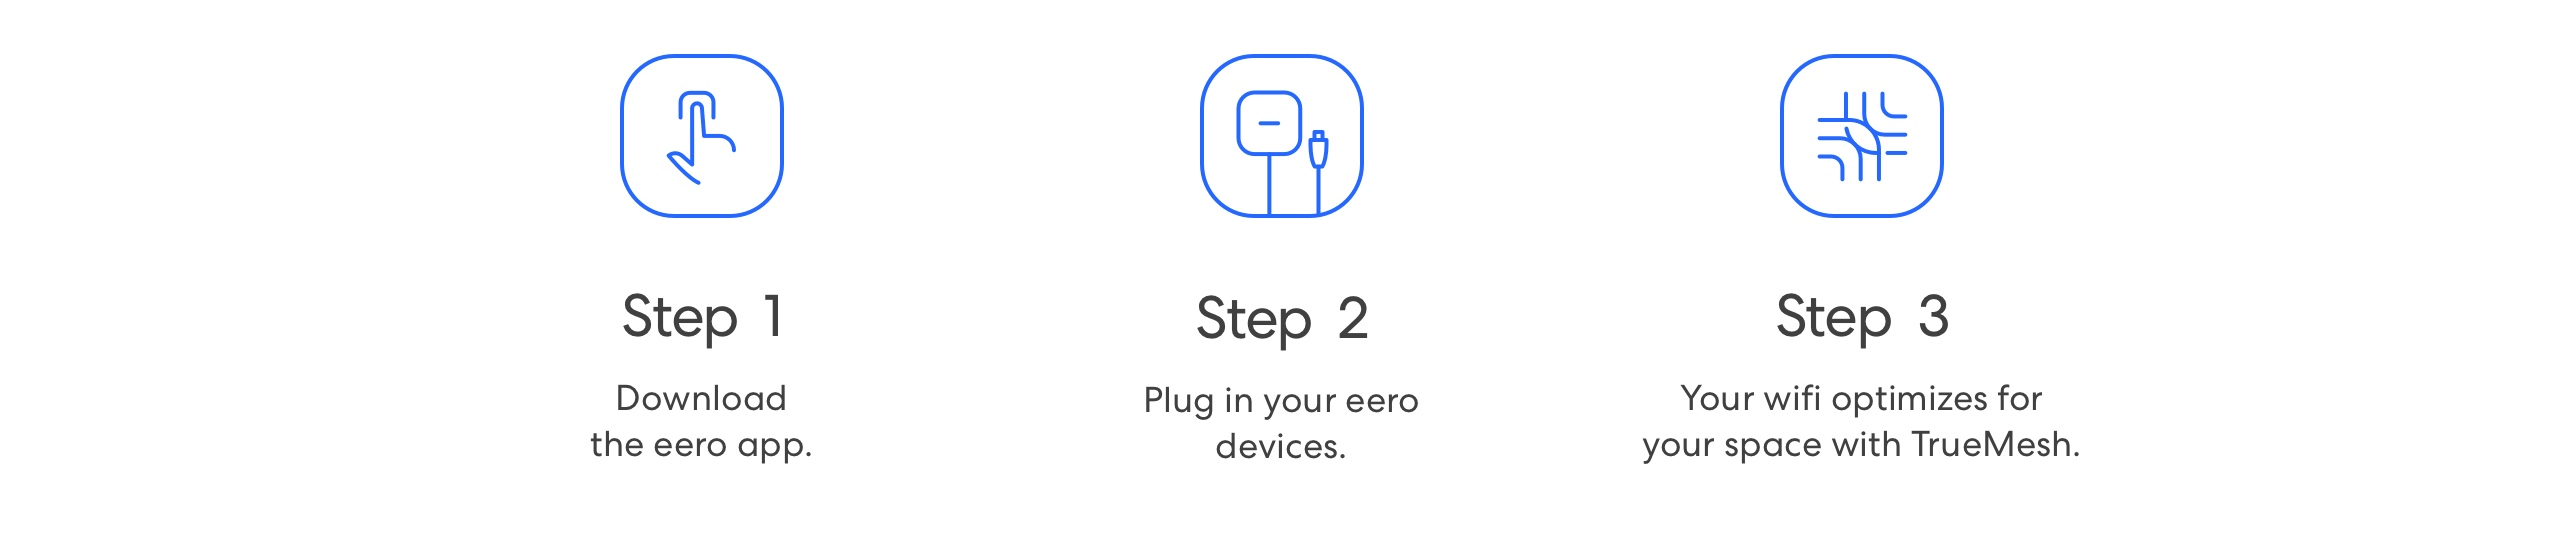 Step 1: Download the eero app. Step 2: Plug in your eero devices. Step 3: Your wifi optimizes for your space with TrueMesh.